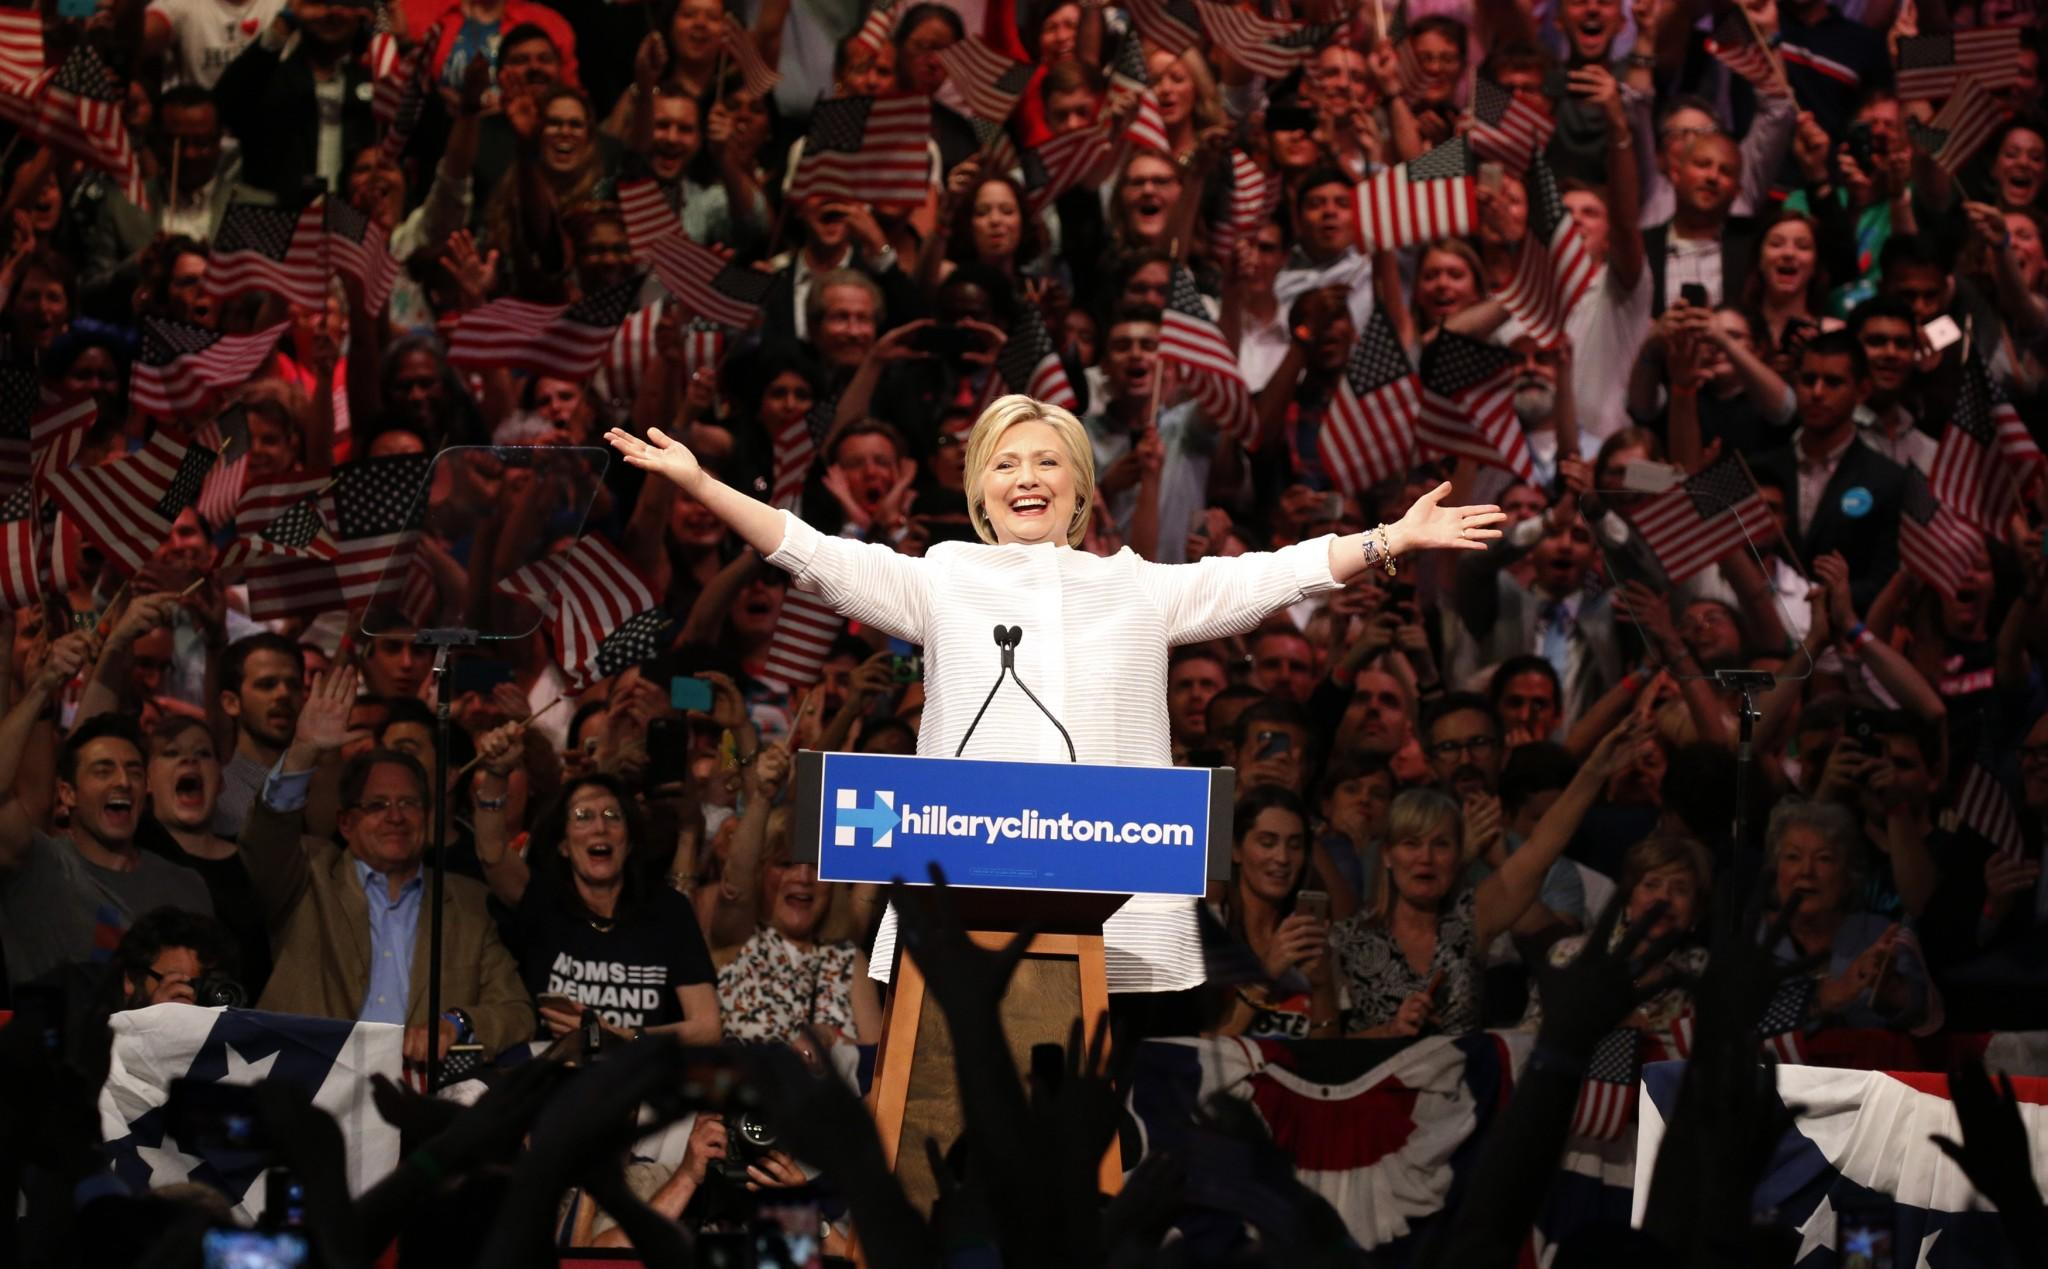 Democratic U.S. presidential candidate Hillary Clinton speaks at a primary night rally on Tuesday in the Brooklyn borough of New York. (Photo: Lucas Jackson/Reuters)